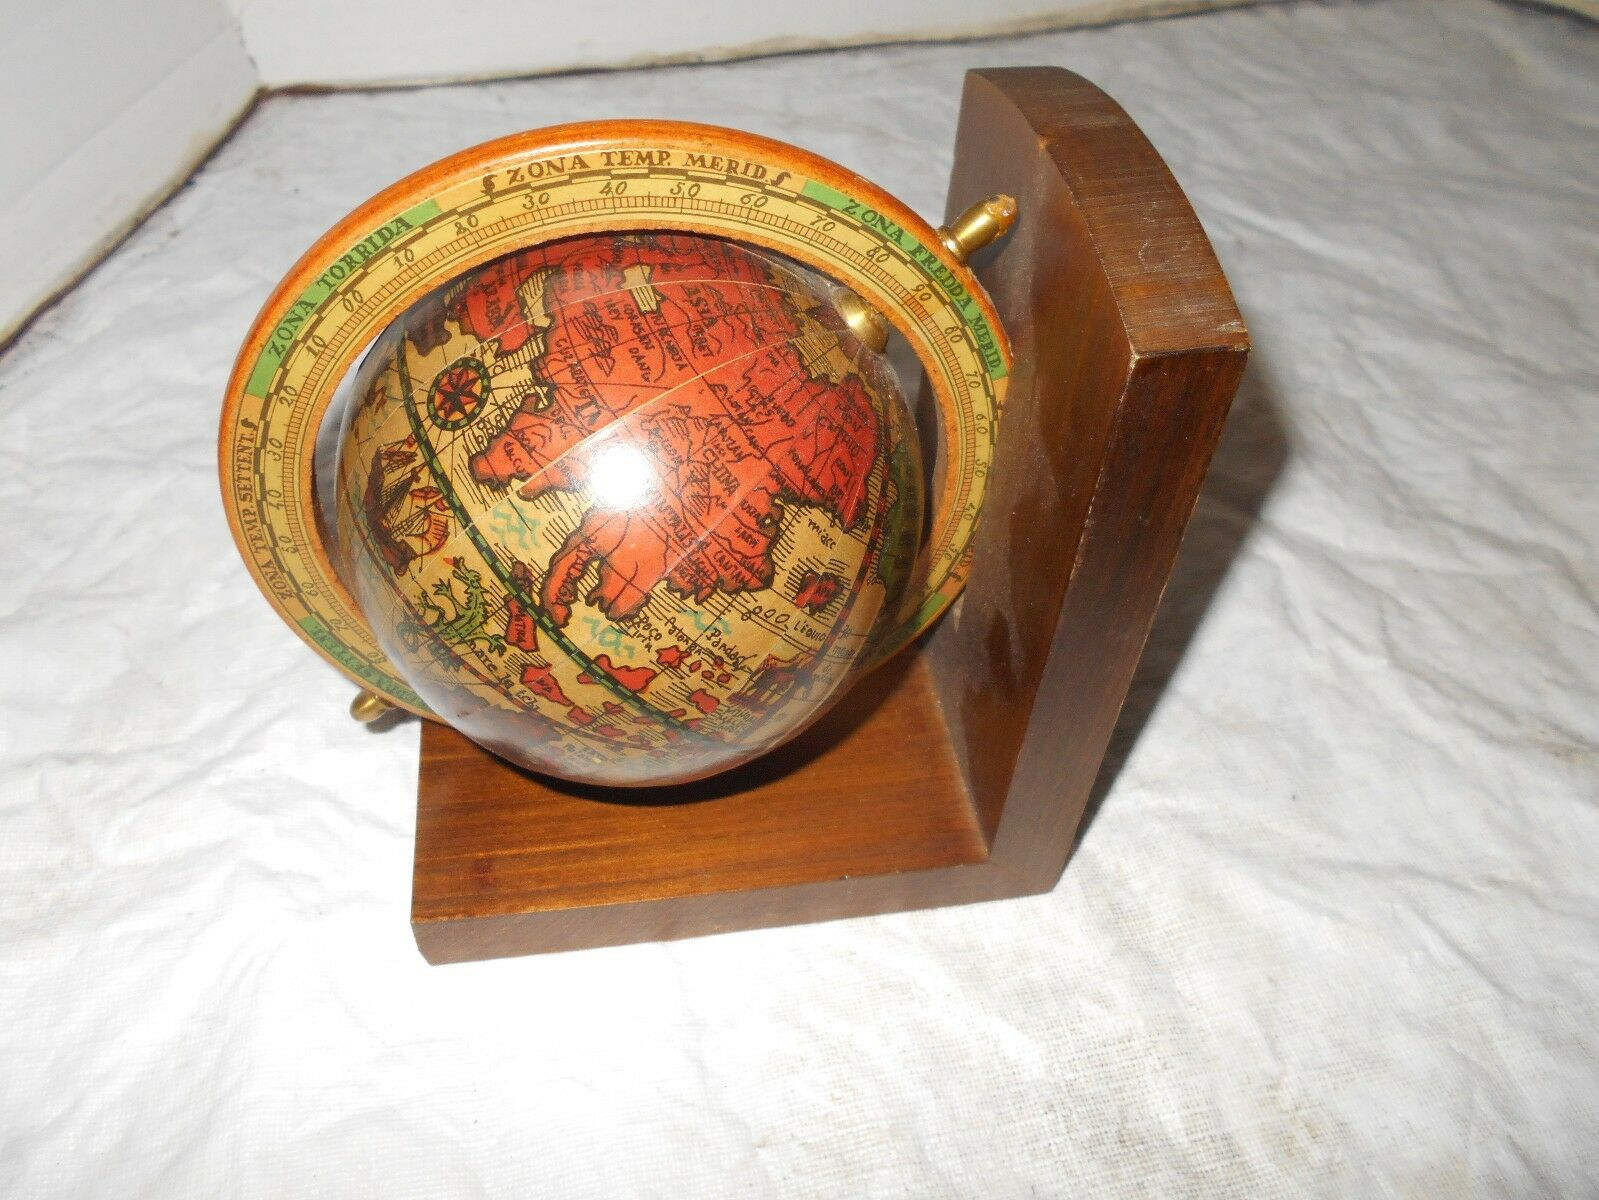 Vtg italian old world map globe spinning large desk display wood vtg italian old world map globe spinning large desk display wood nautical decor 1 of 4 see more gumiabroncs Image collections